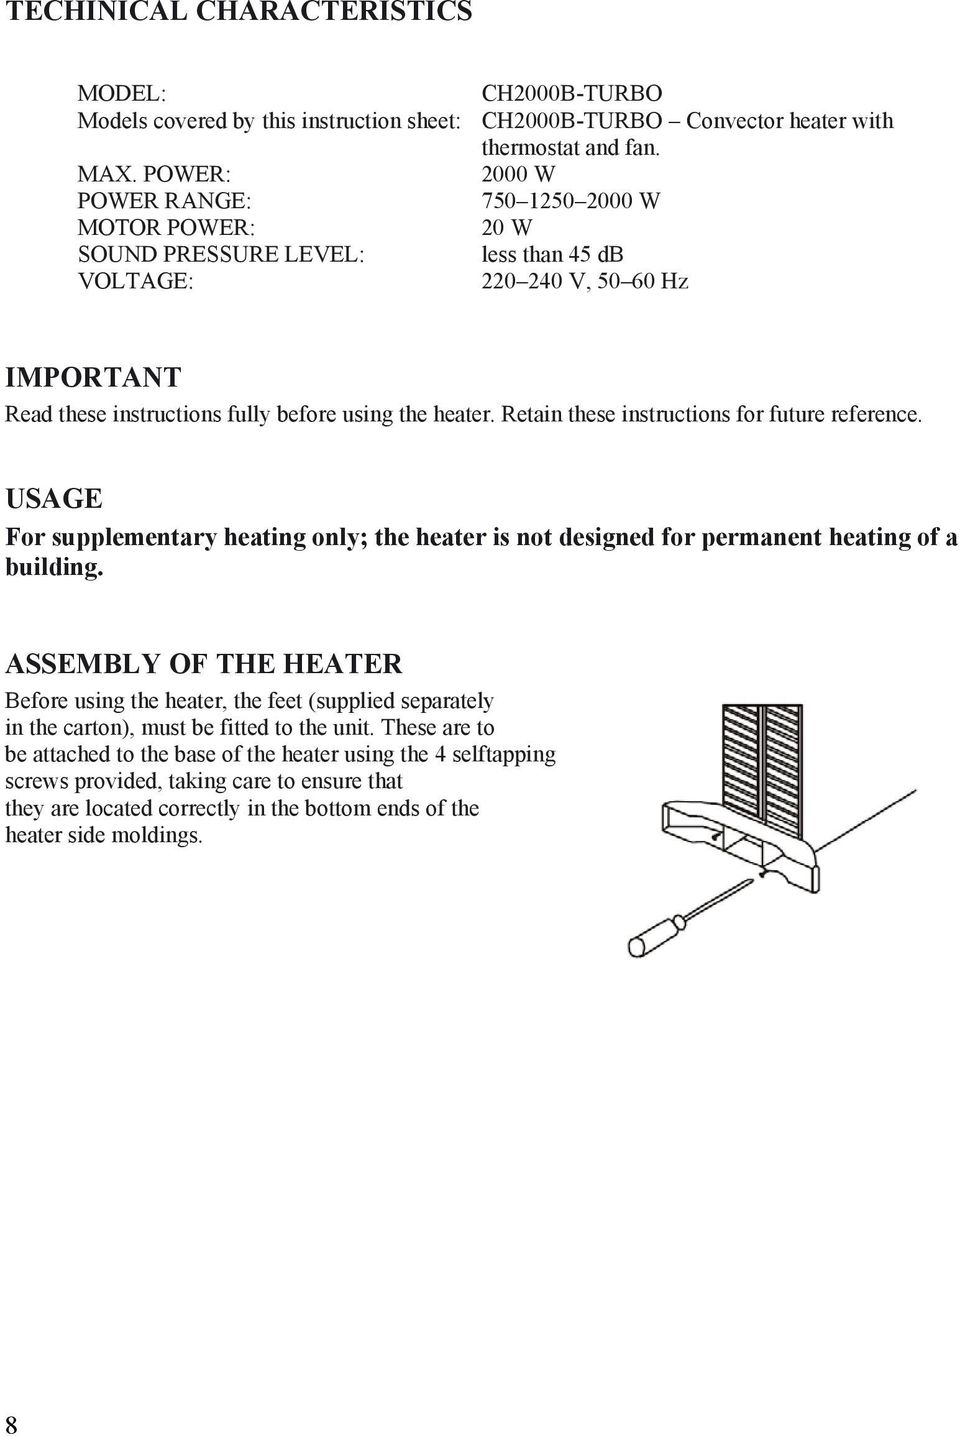 Retain these instructions for future reference. USAGE For supplementary heating only; the heater is not designed for permanent heating of a building.